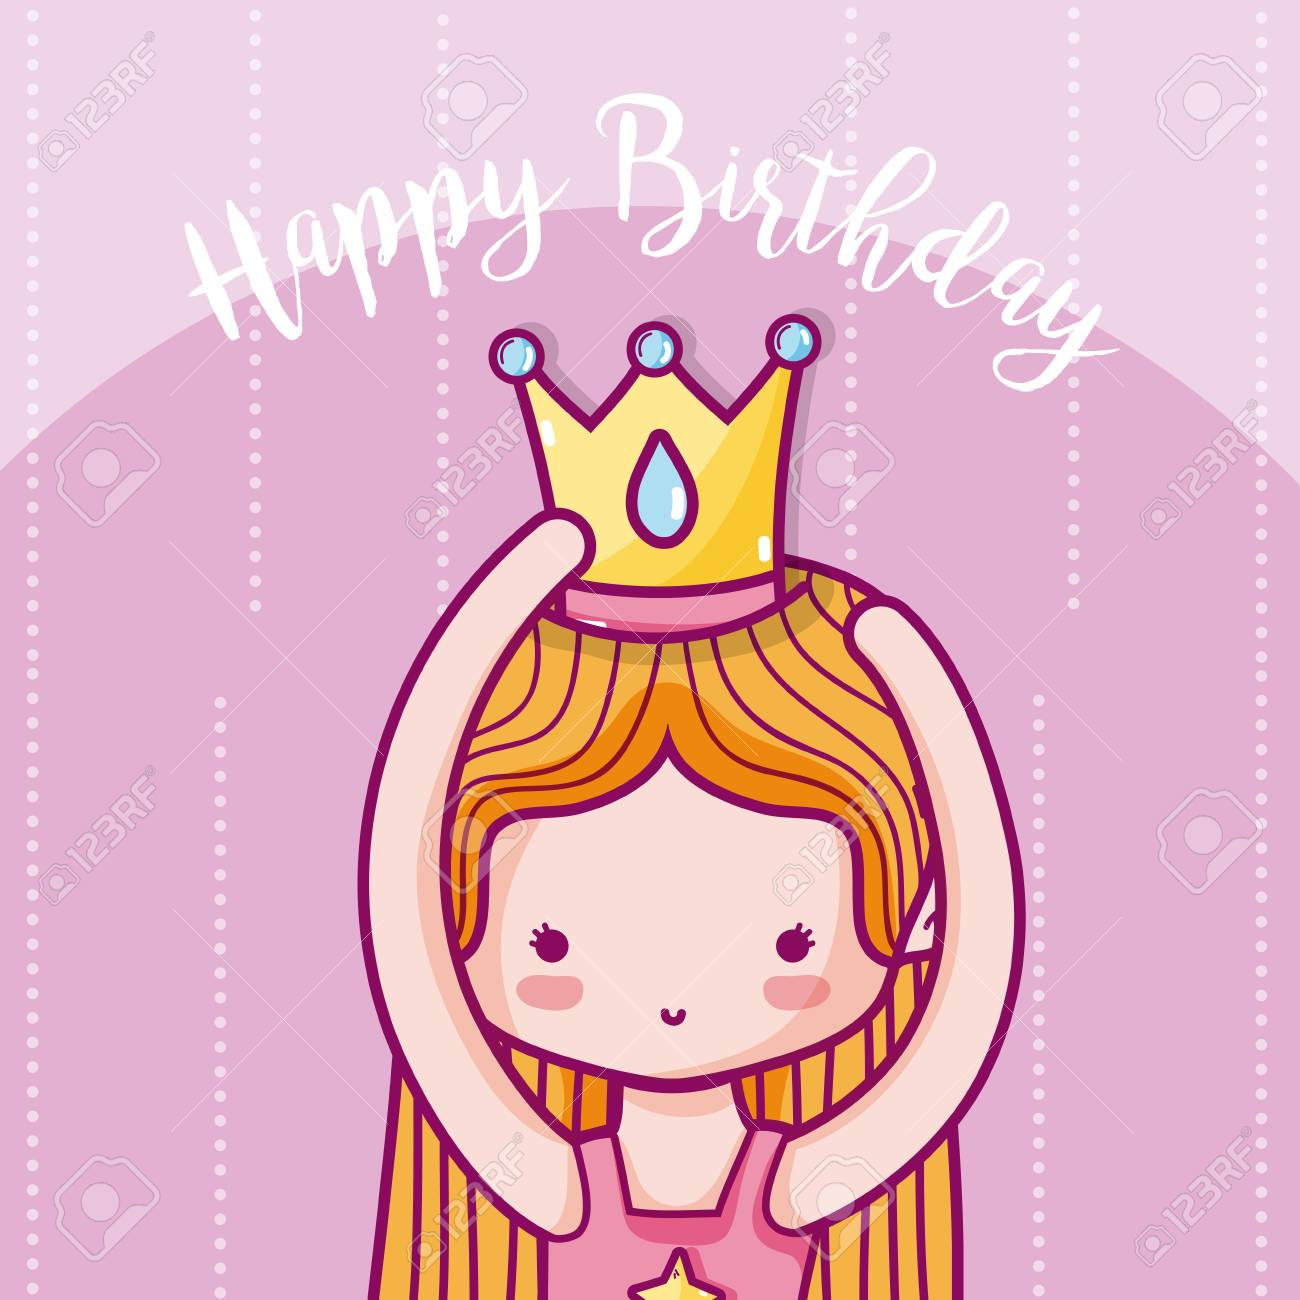 Happy Birthday Card For Girl With Princess Cartoons Vector Illustration Graphic Design Stock